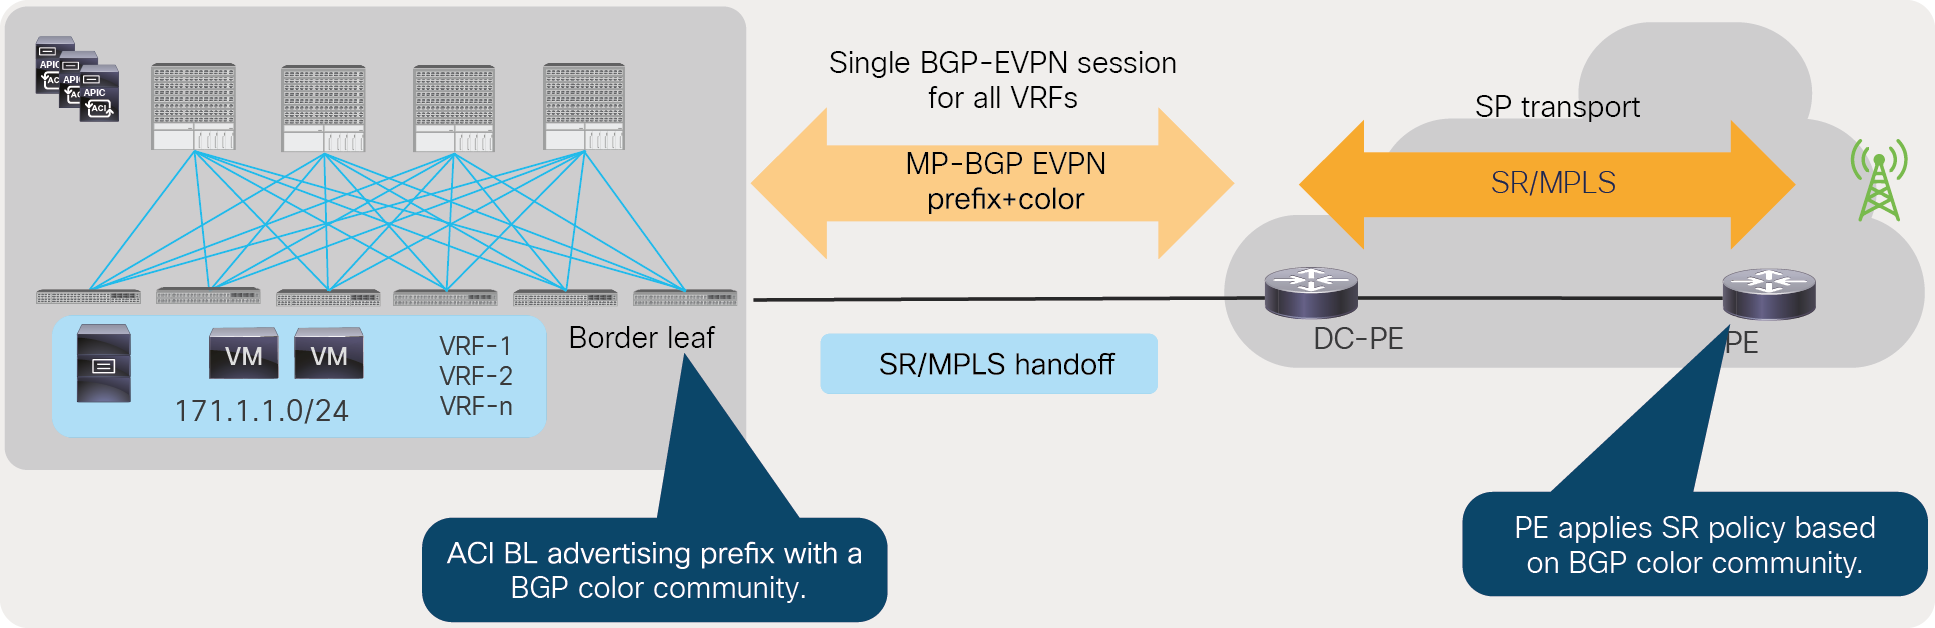 Consistent policy across the data center and SP transport using BGP color community